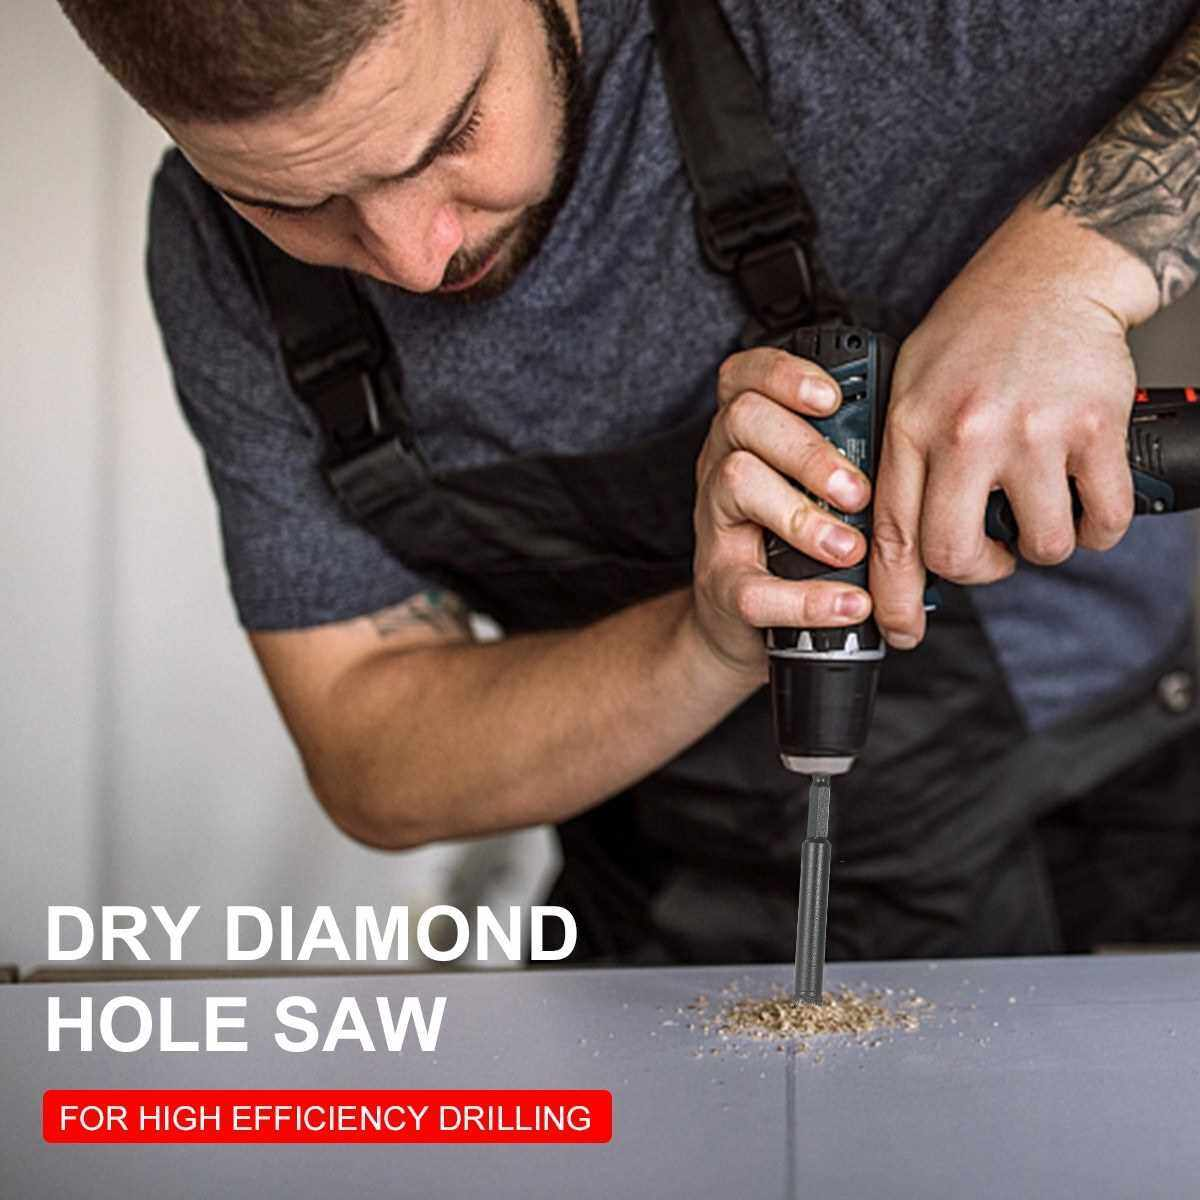 Dry Diamond Hole Saw 4-Piece Drill Bit Set (6mm, 8mm, 10mm, 12mm) with Hex Head Cooling Wax for Porcelain Tile Ceramic Granite Marble Stone Masonry Brick (Standard)